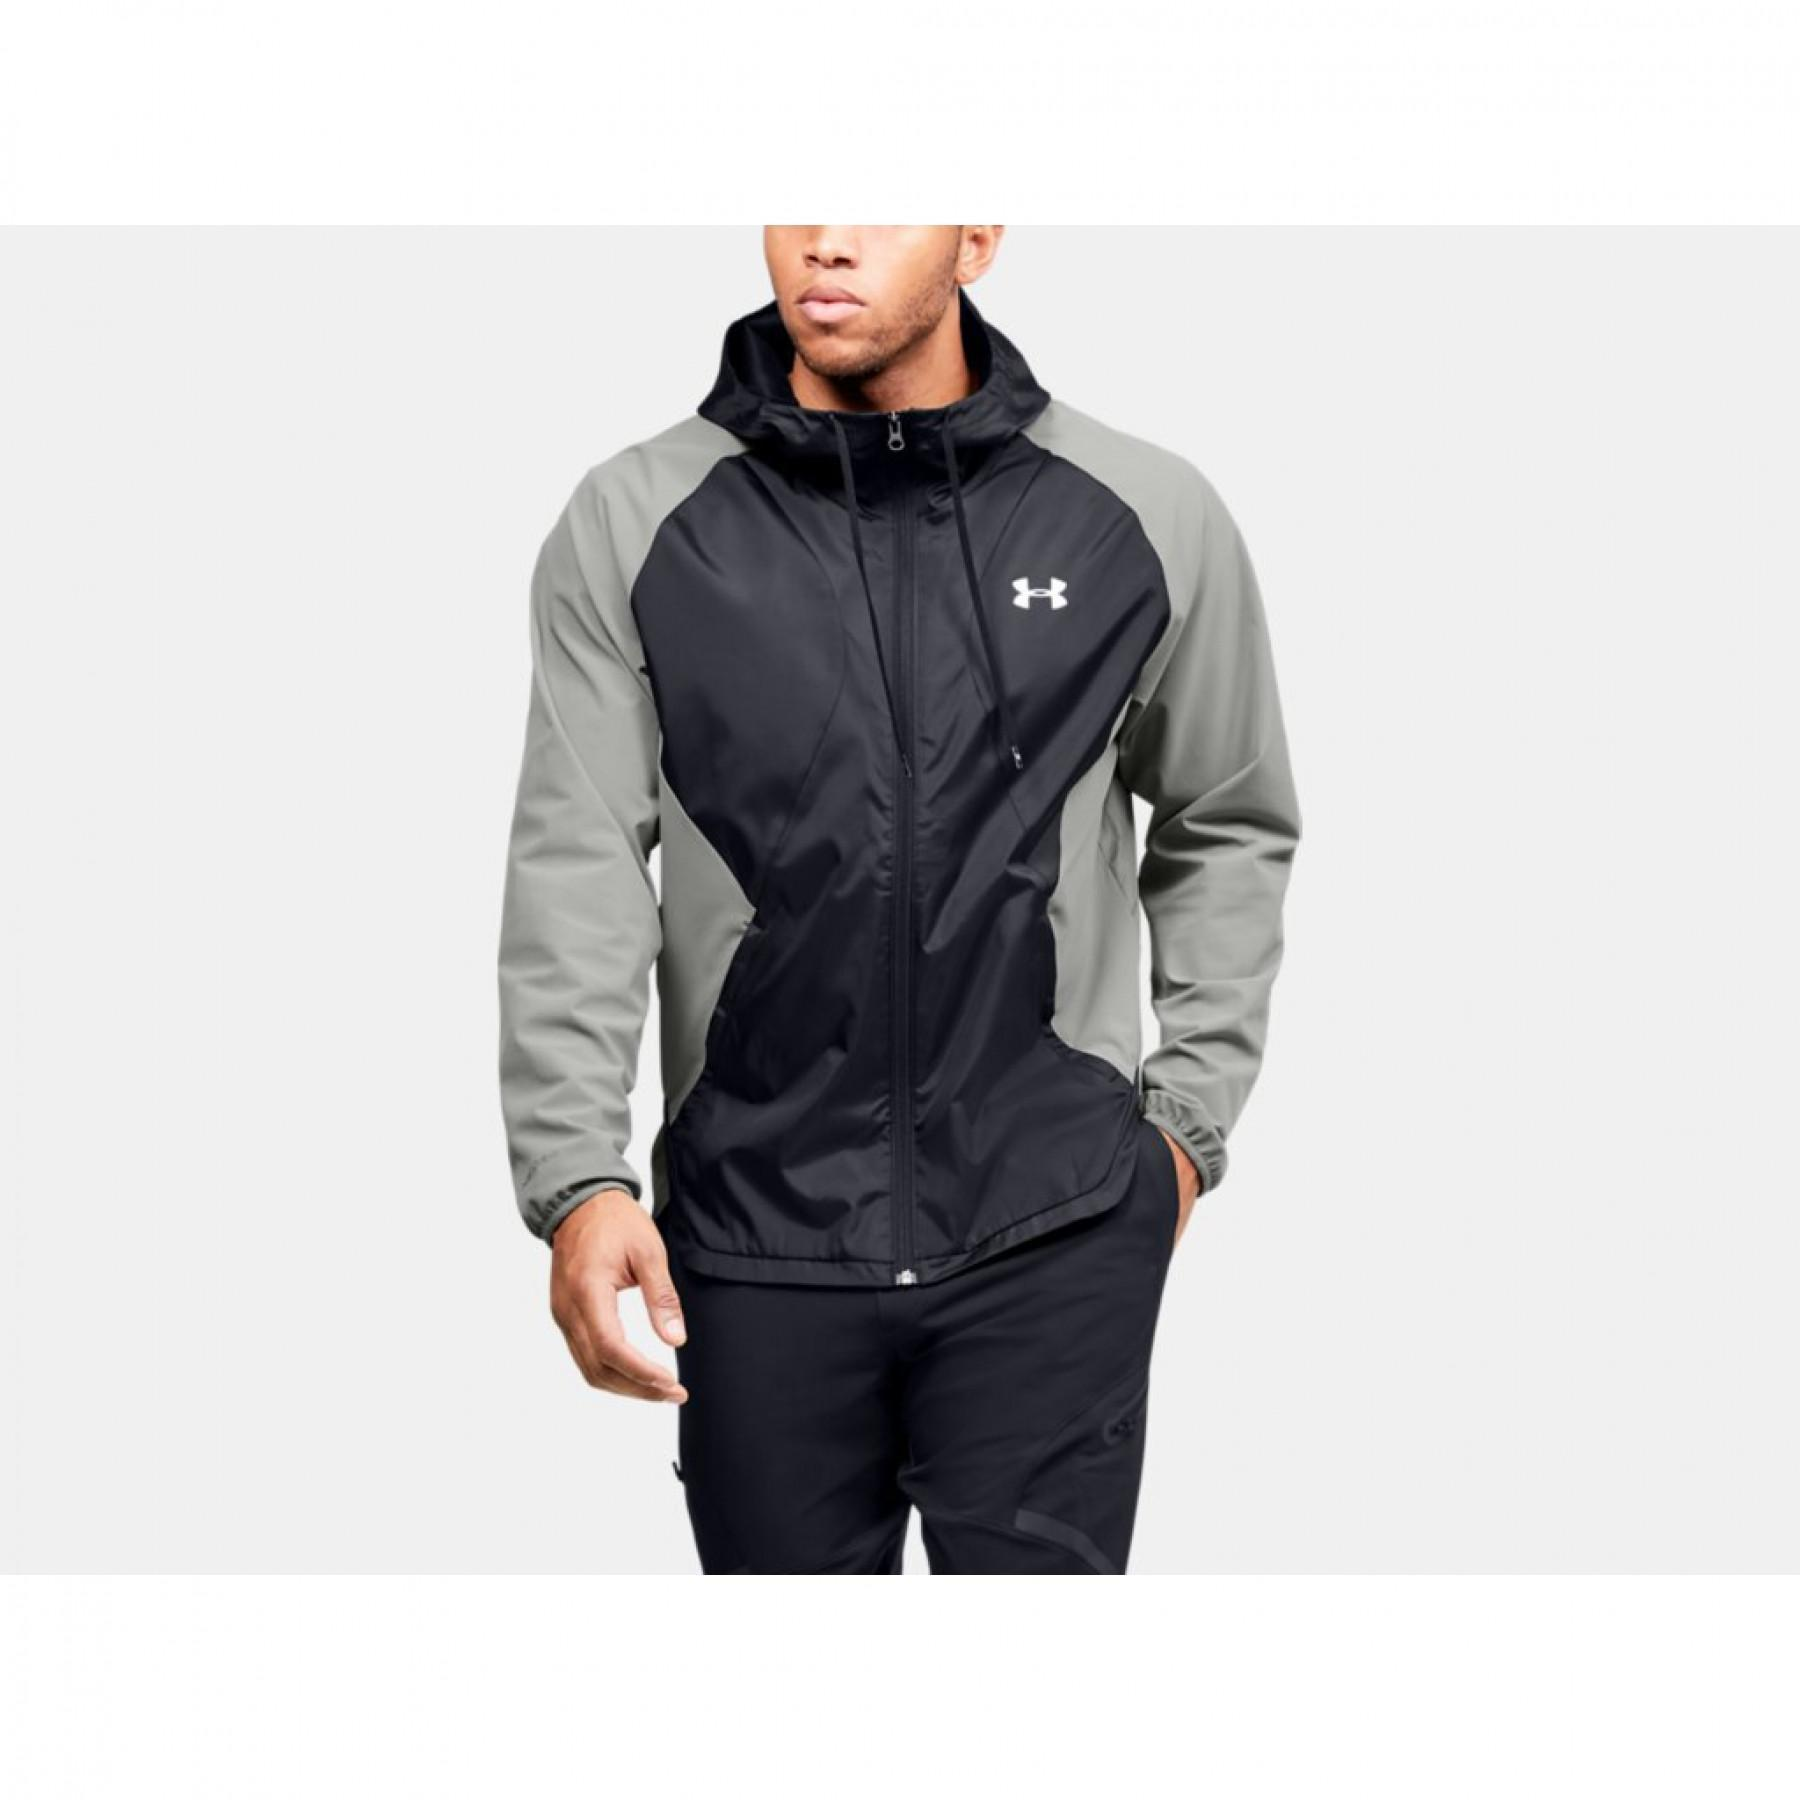 Under Armour Stretch Woven Full Zip Jacket